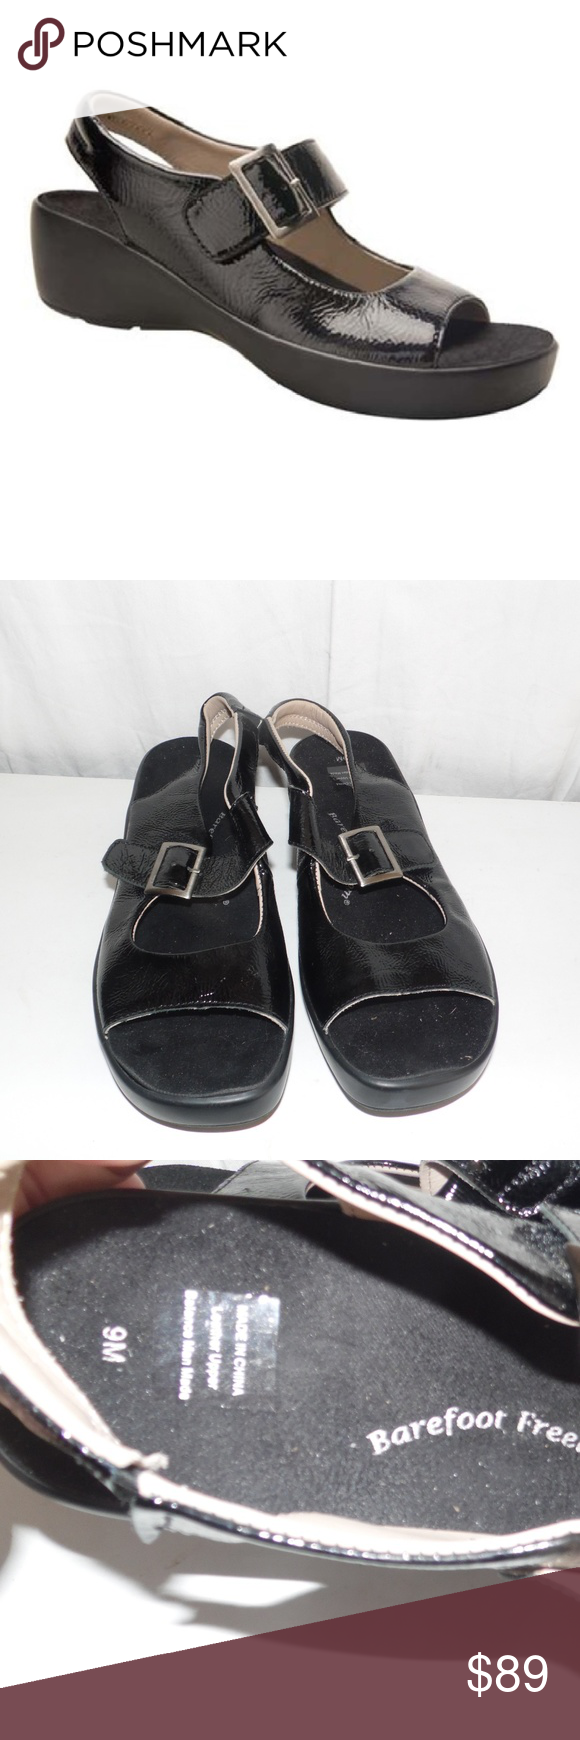 d74959399 Barefoot Freedom Drew Avalon Black Sandal 9 M Brand new with no box - never  been